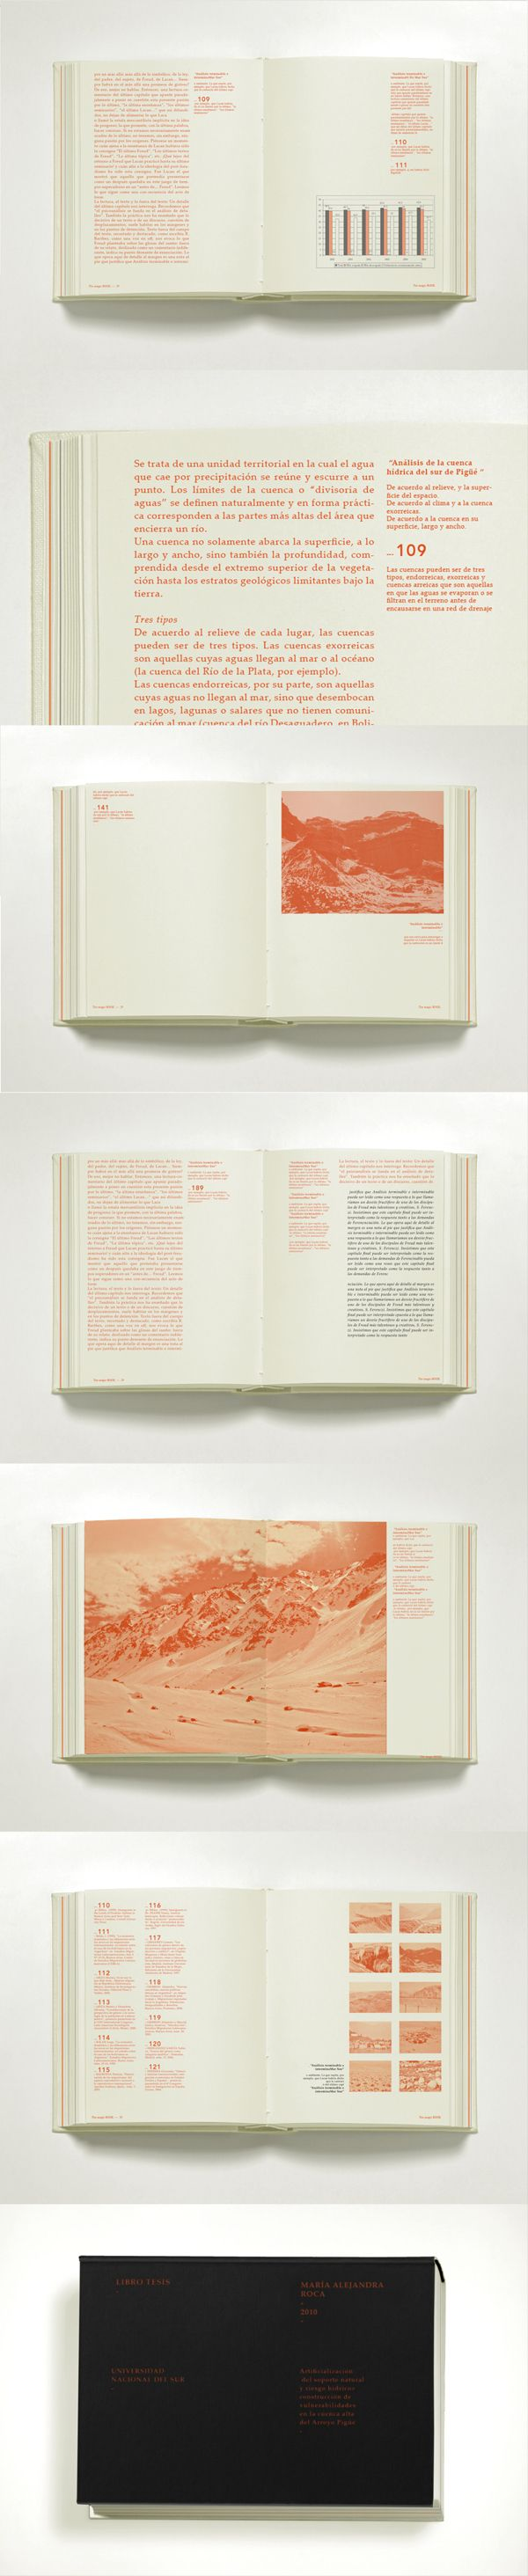 Libro Tesis by Lucía Izco, via Behance